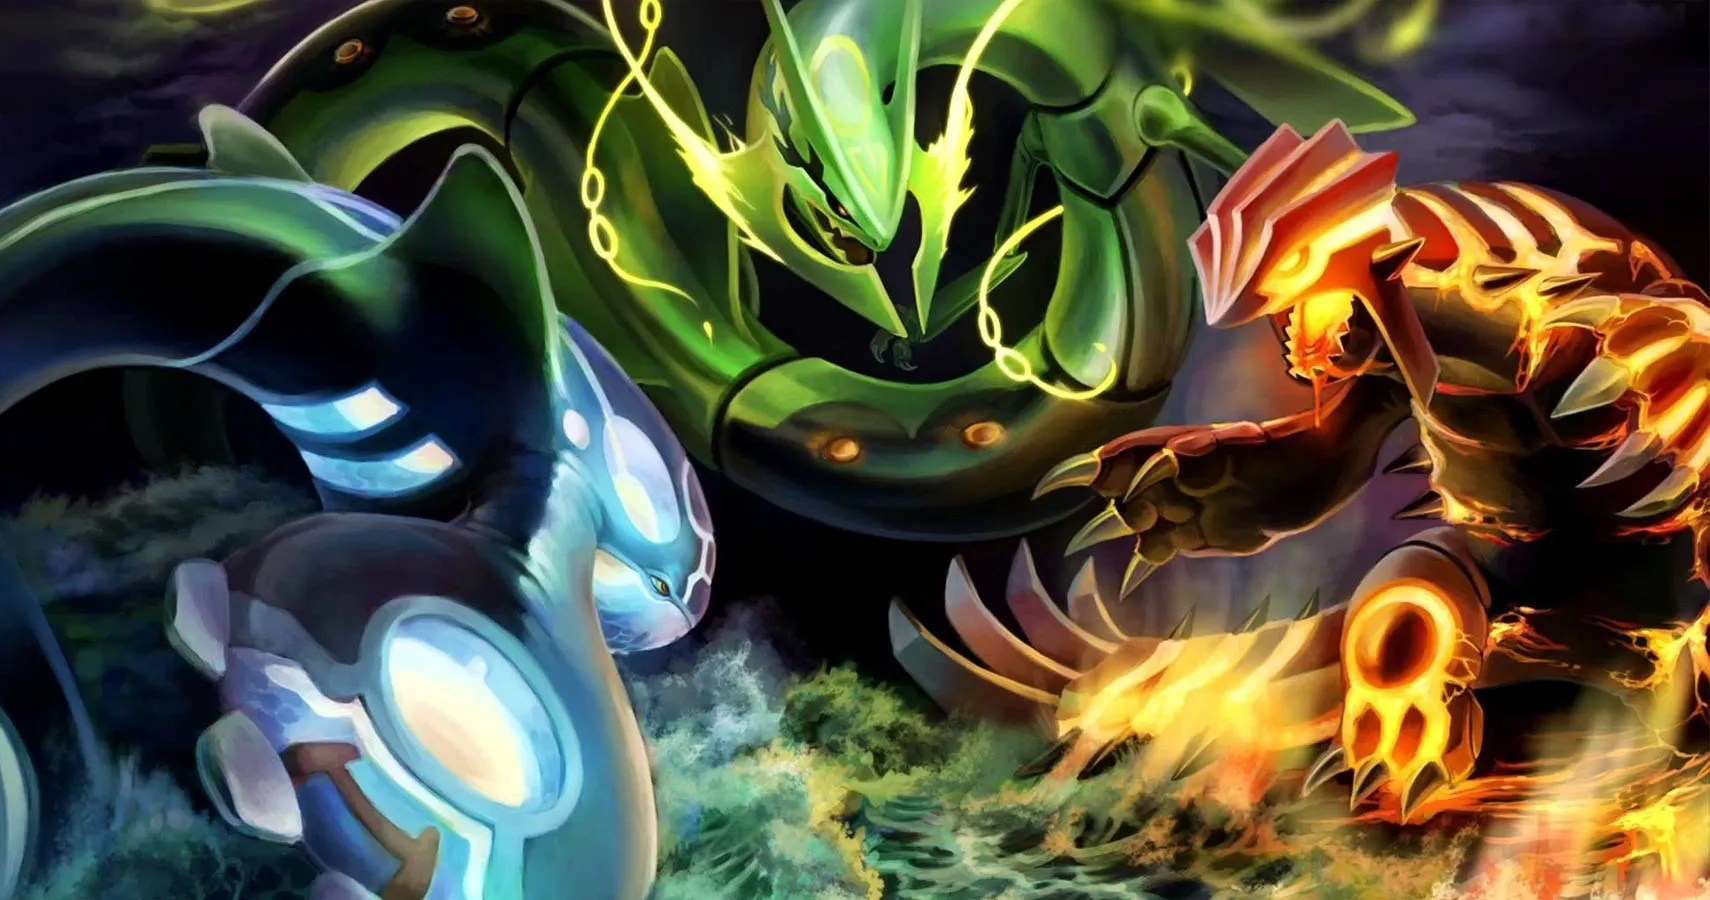 Ranking The Top 15 Legendary Pokemon From Least To Most Powerful